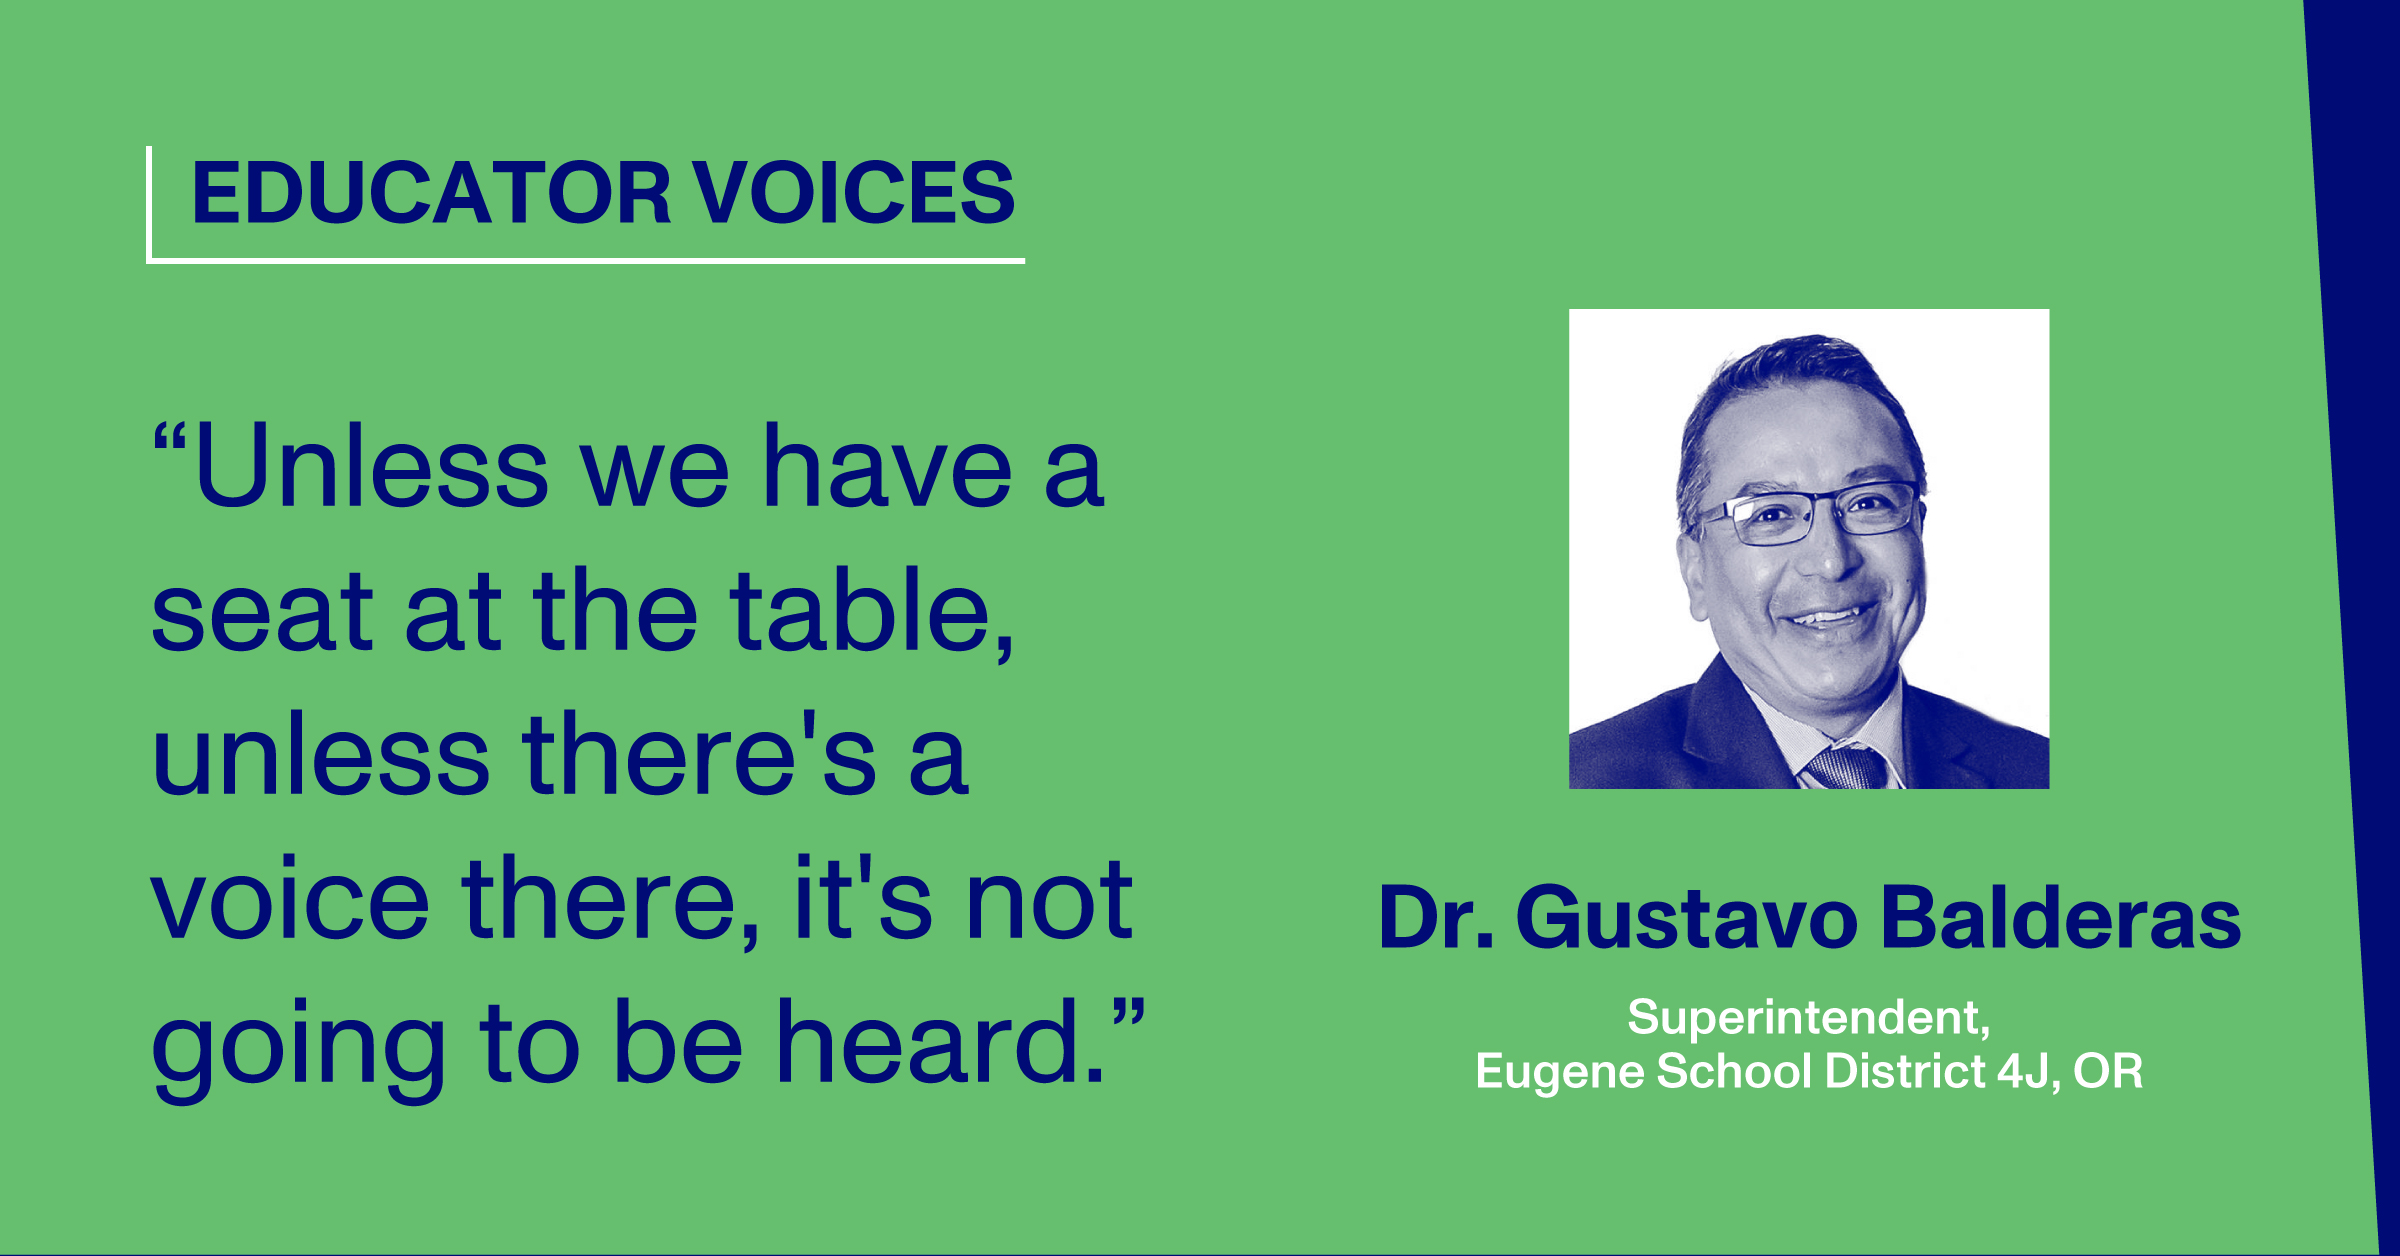 Headshot and Quote by Dr. Gustavo Balderas